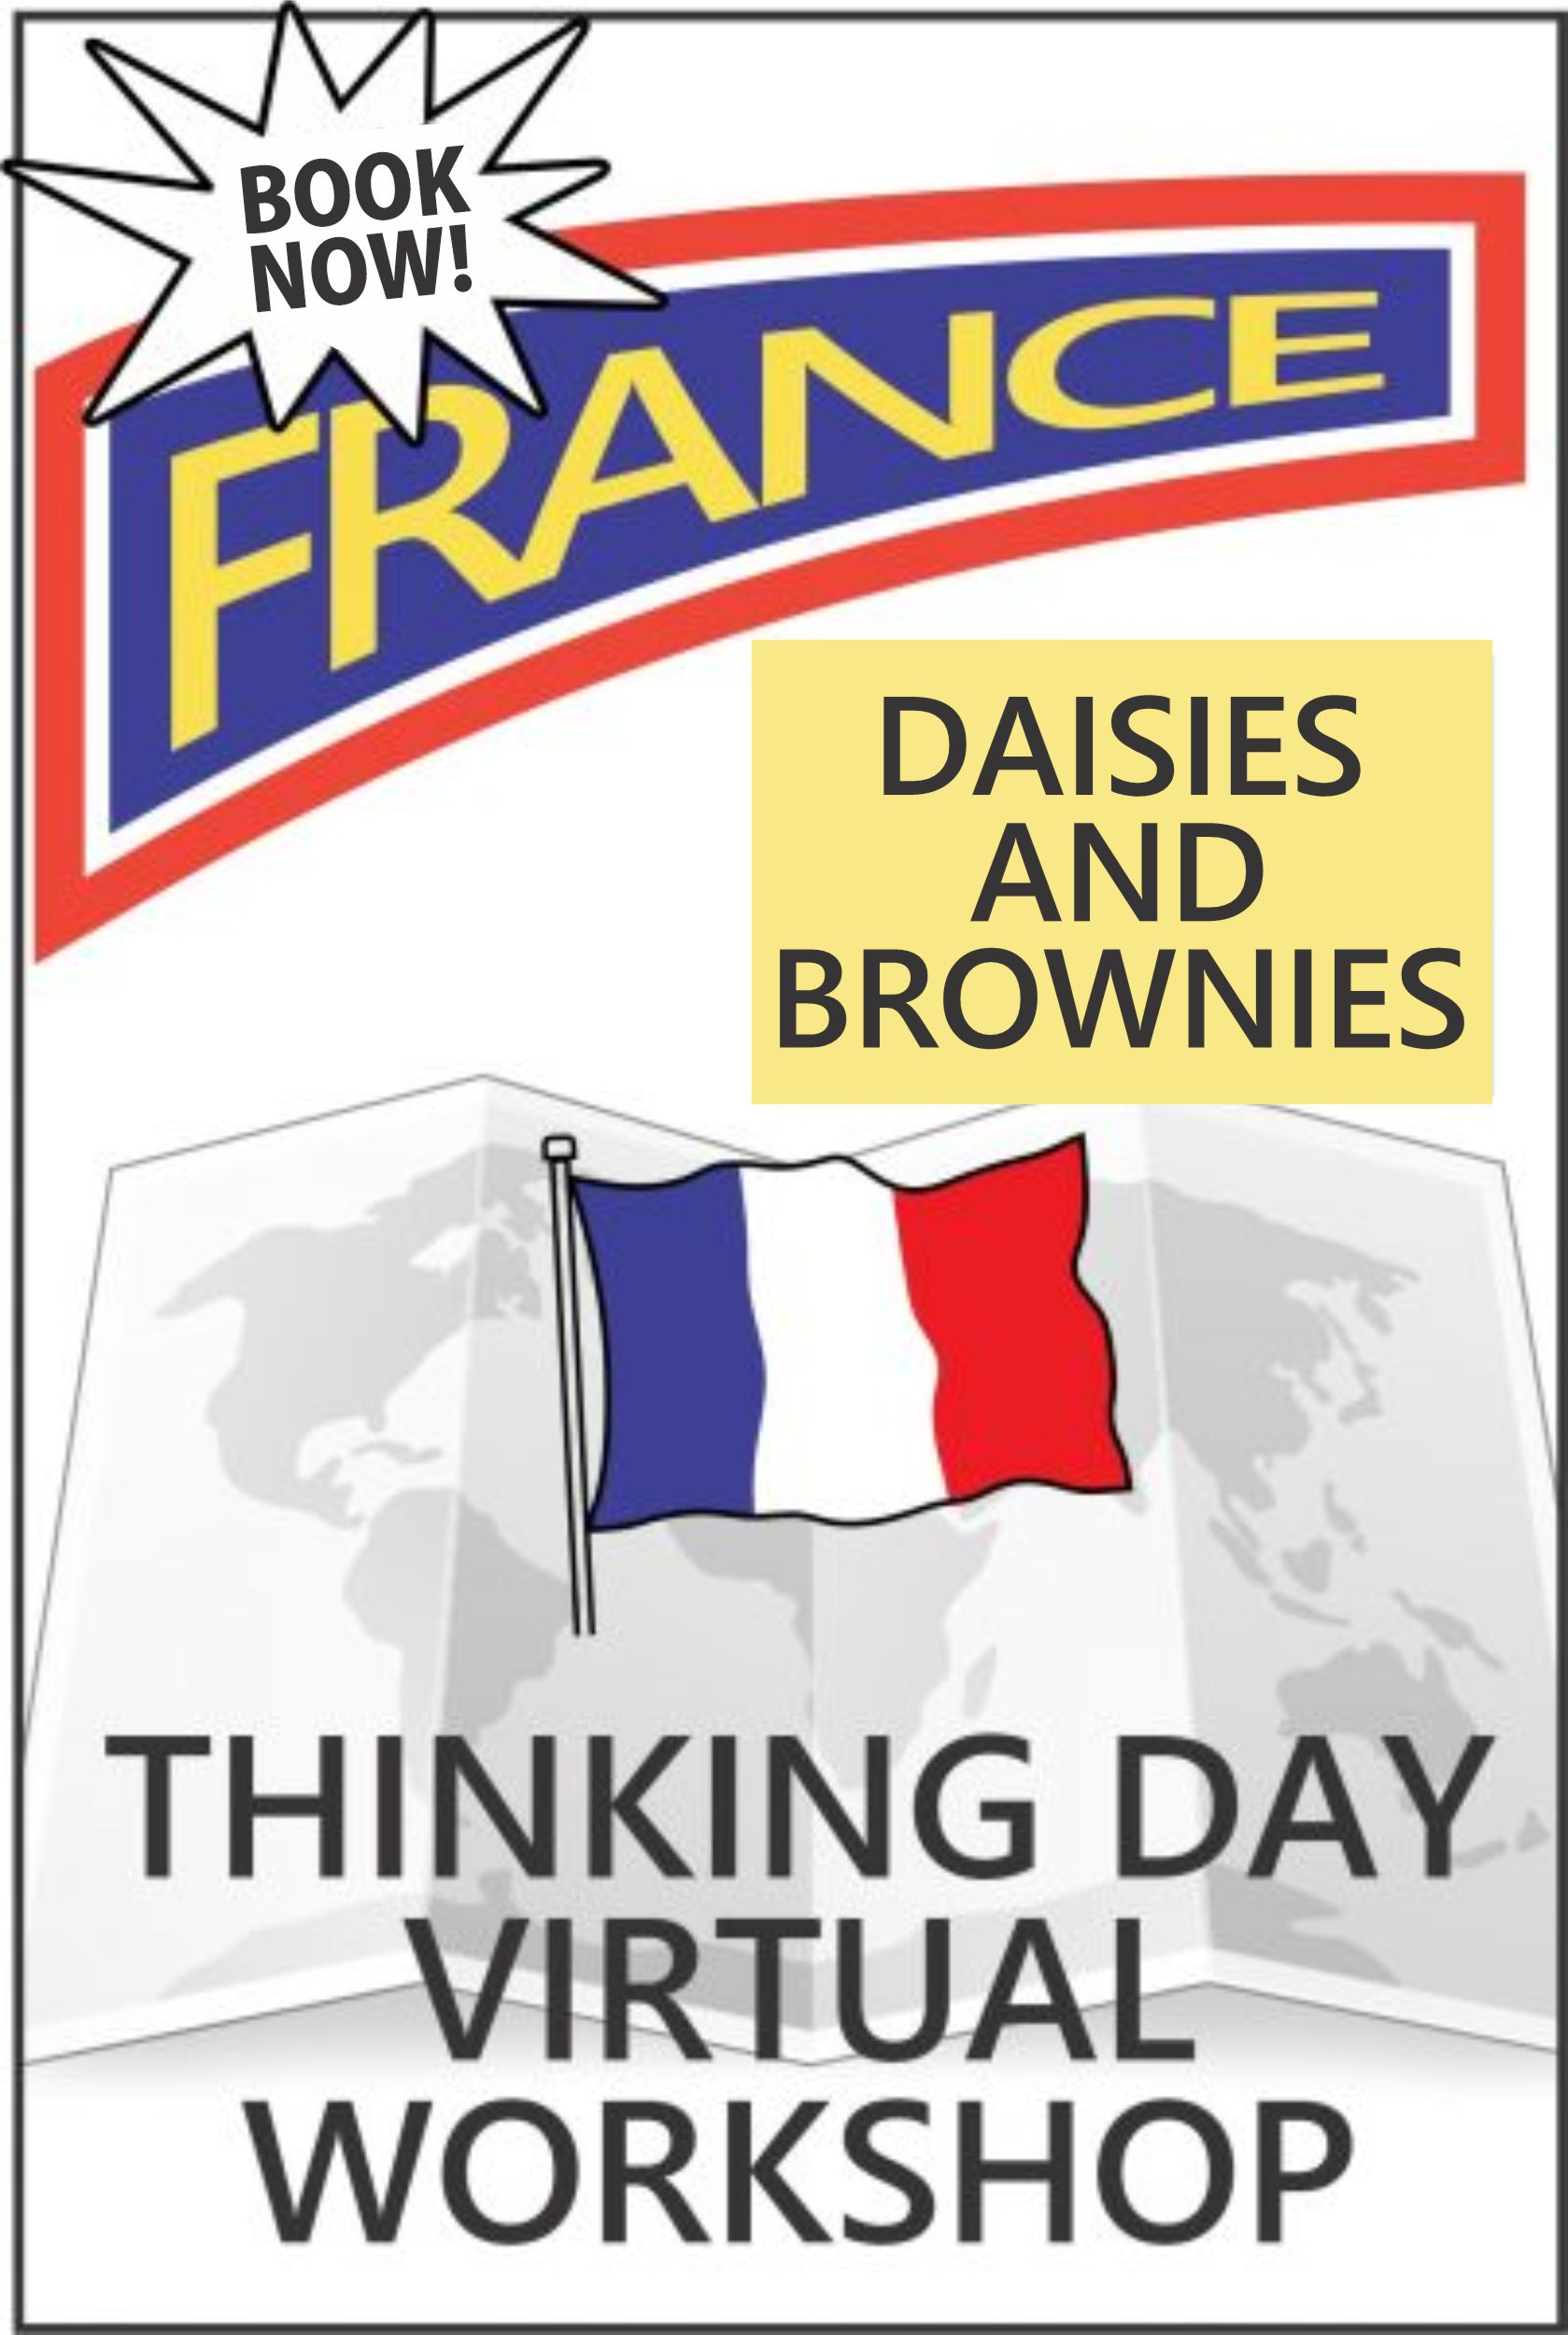 Explore French traditions, food, clothing, customs, and more! Includes supplies and patch. #makingfriends #virtualworkshop #france #thinkingday #girlscouts #traditions #daisies #brownies #workshop #onlineclass via @gsleader411